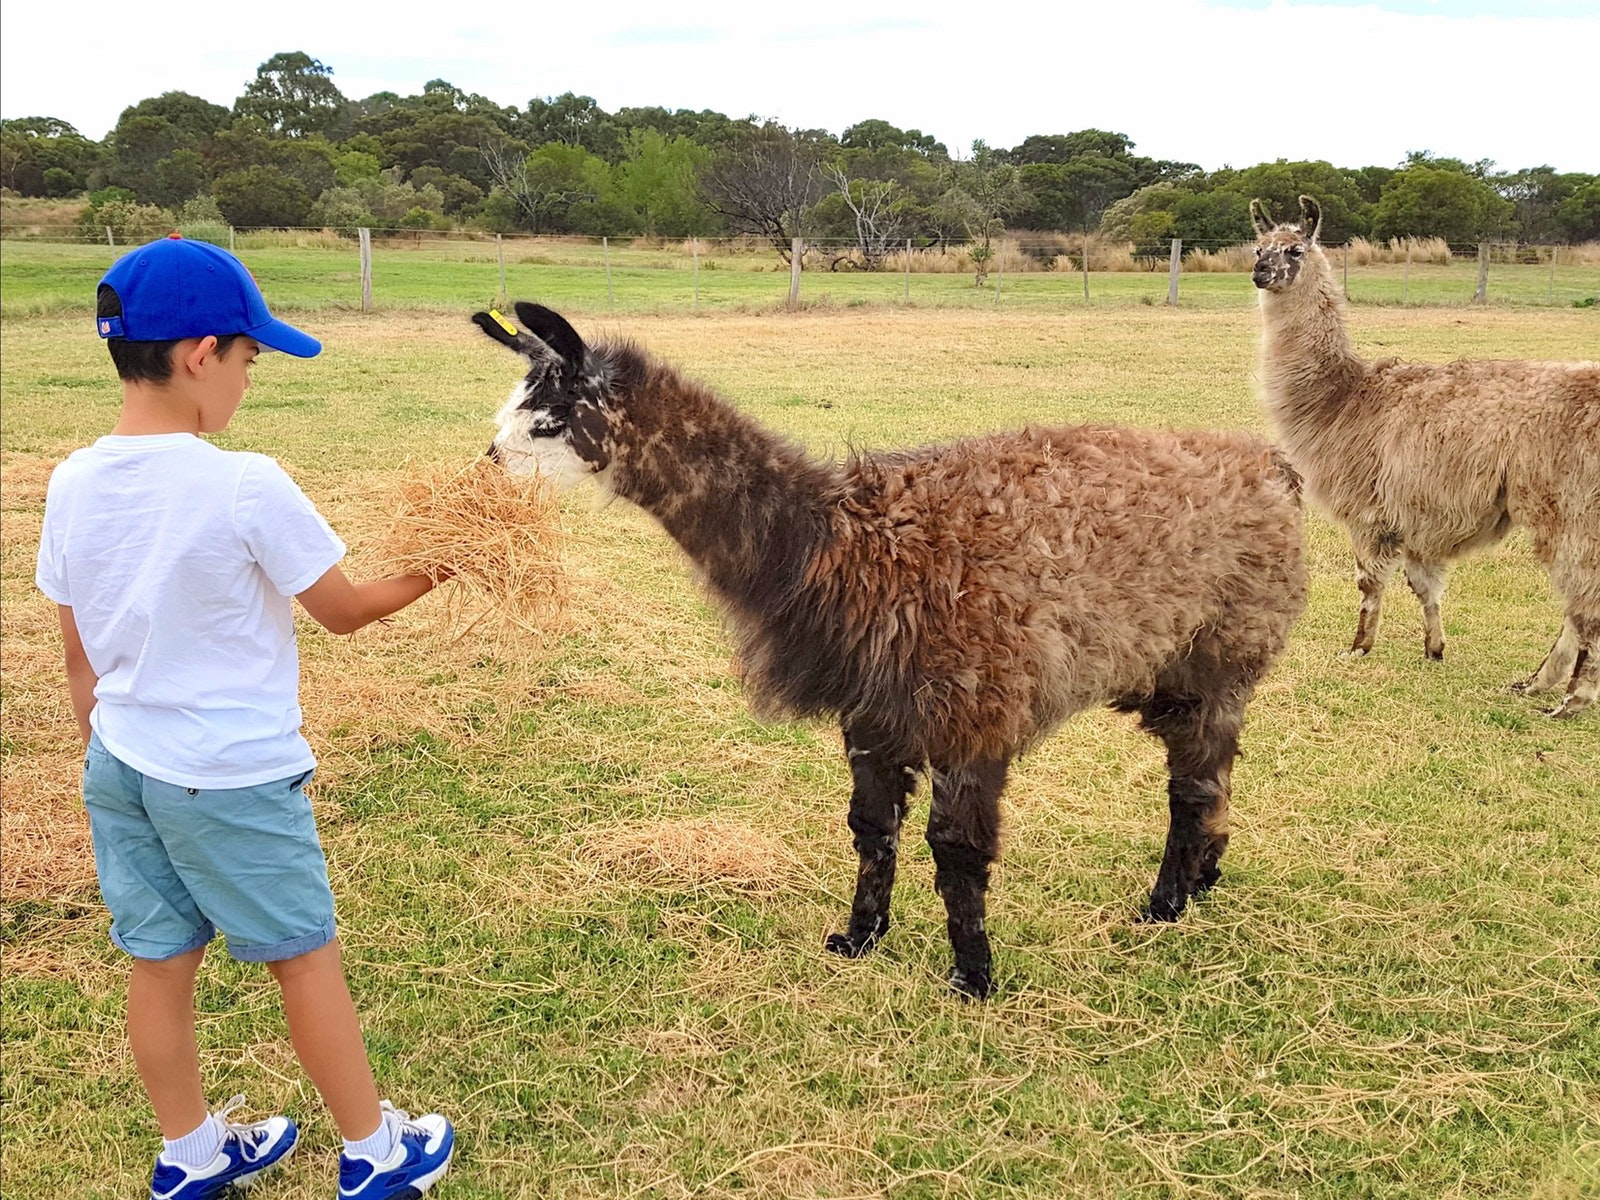 Basils Farm - Feeding the Llamas